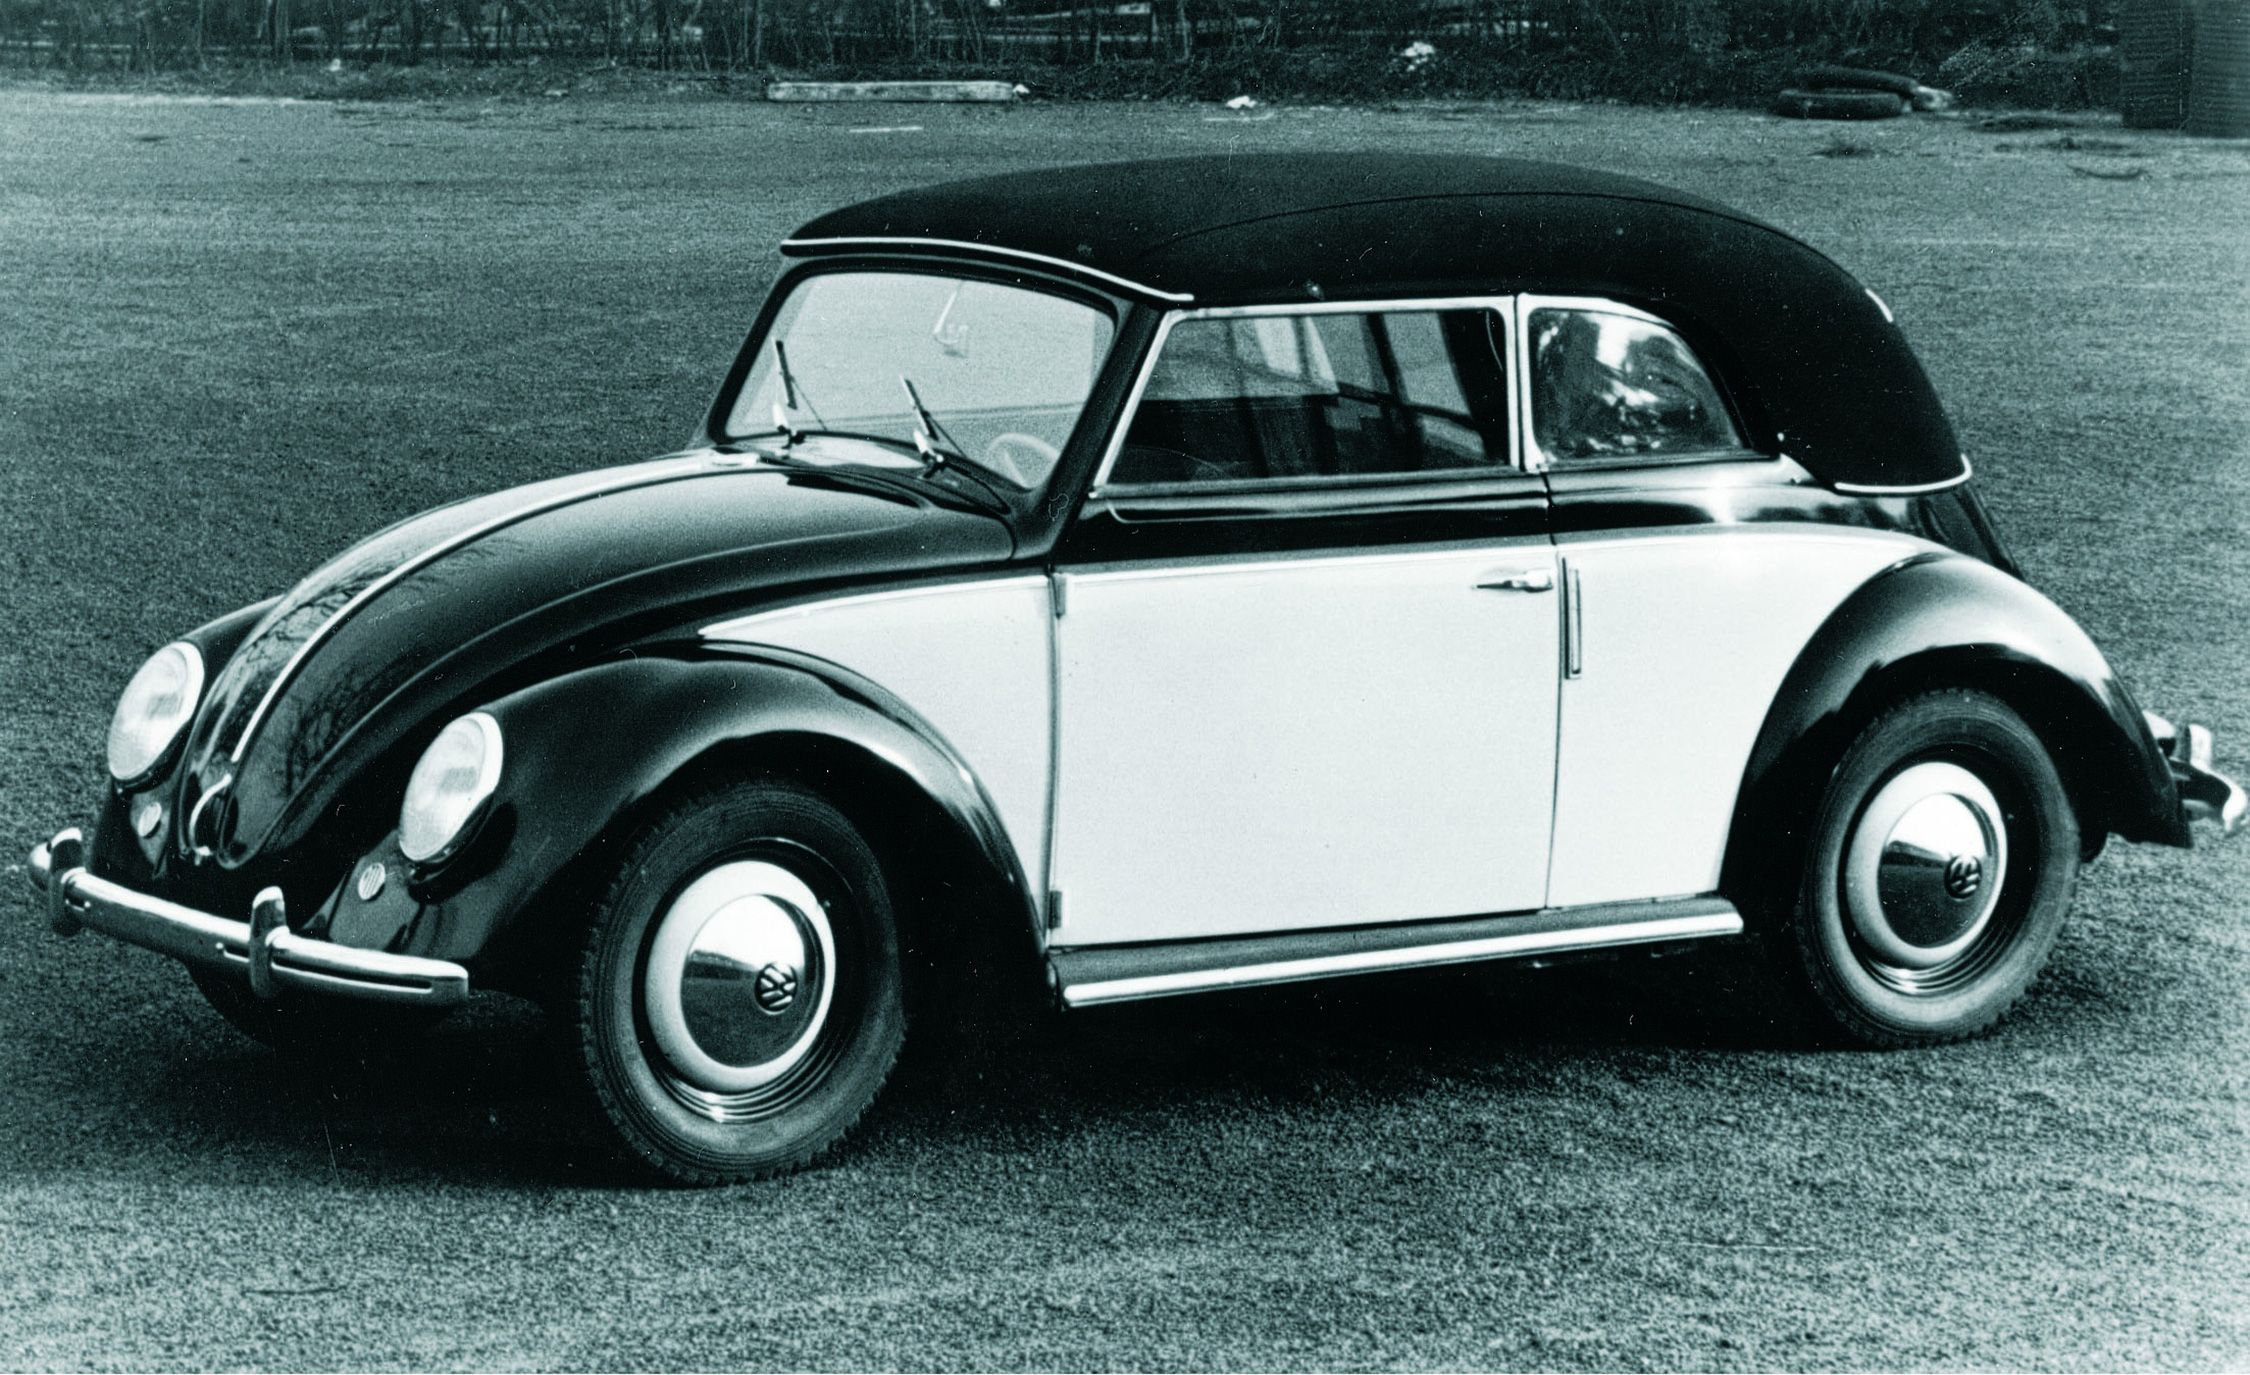 Volkswagen Beetle Models by Year - Old and Classic VW Bugs